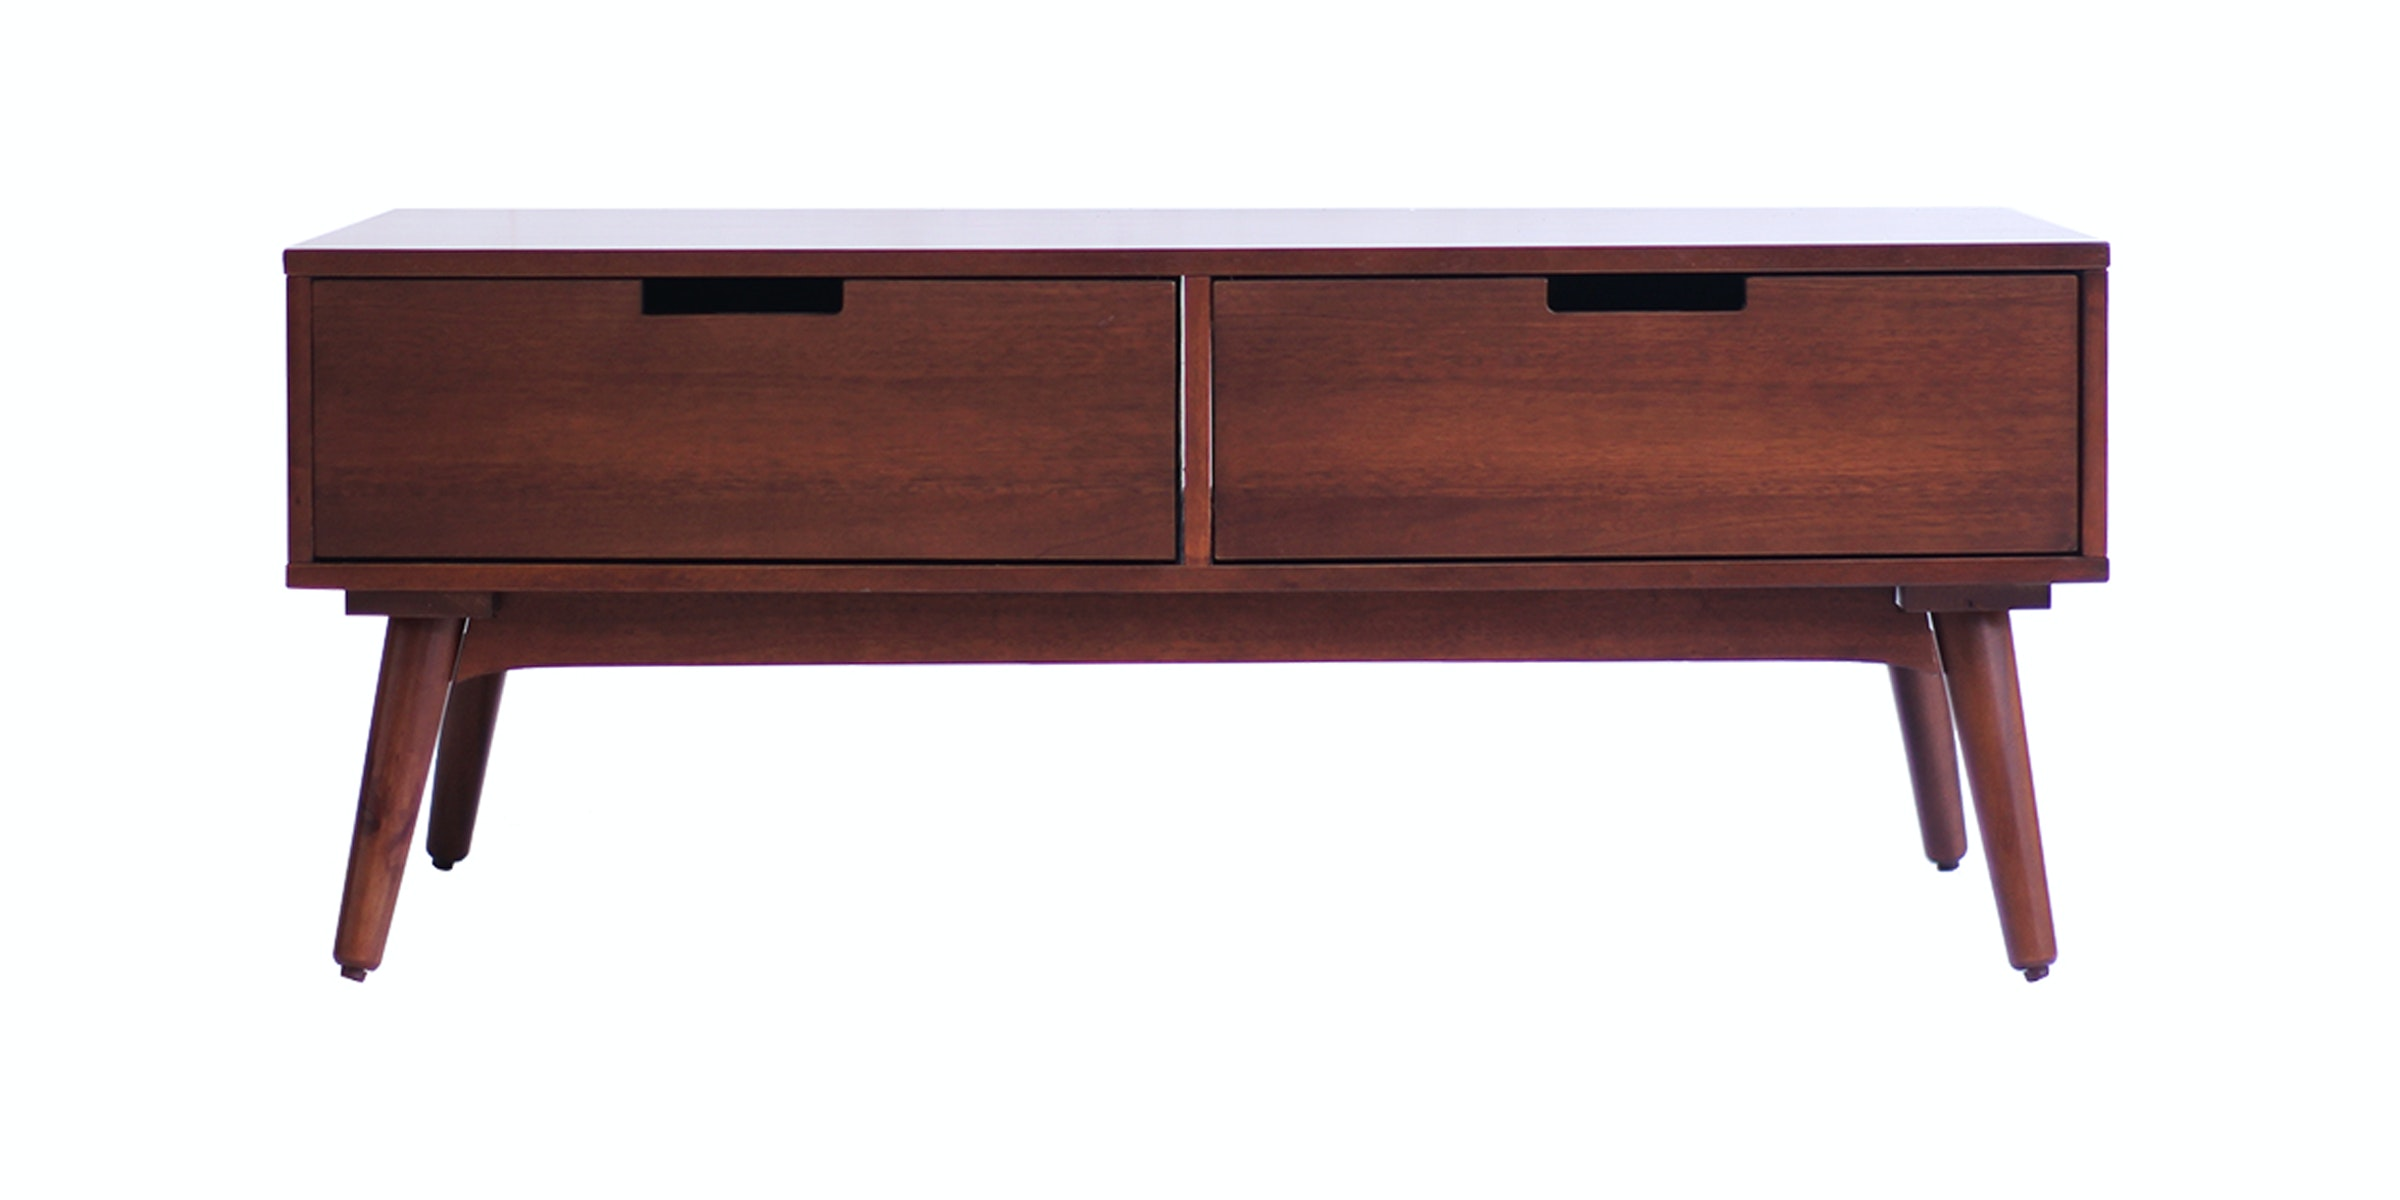 Thema Home Ct Rondane With Drawer Skandi Walnut Integ